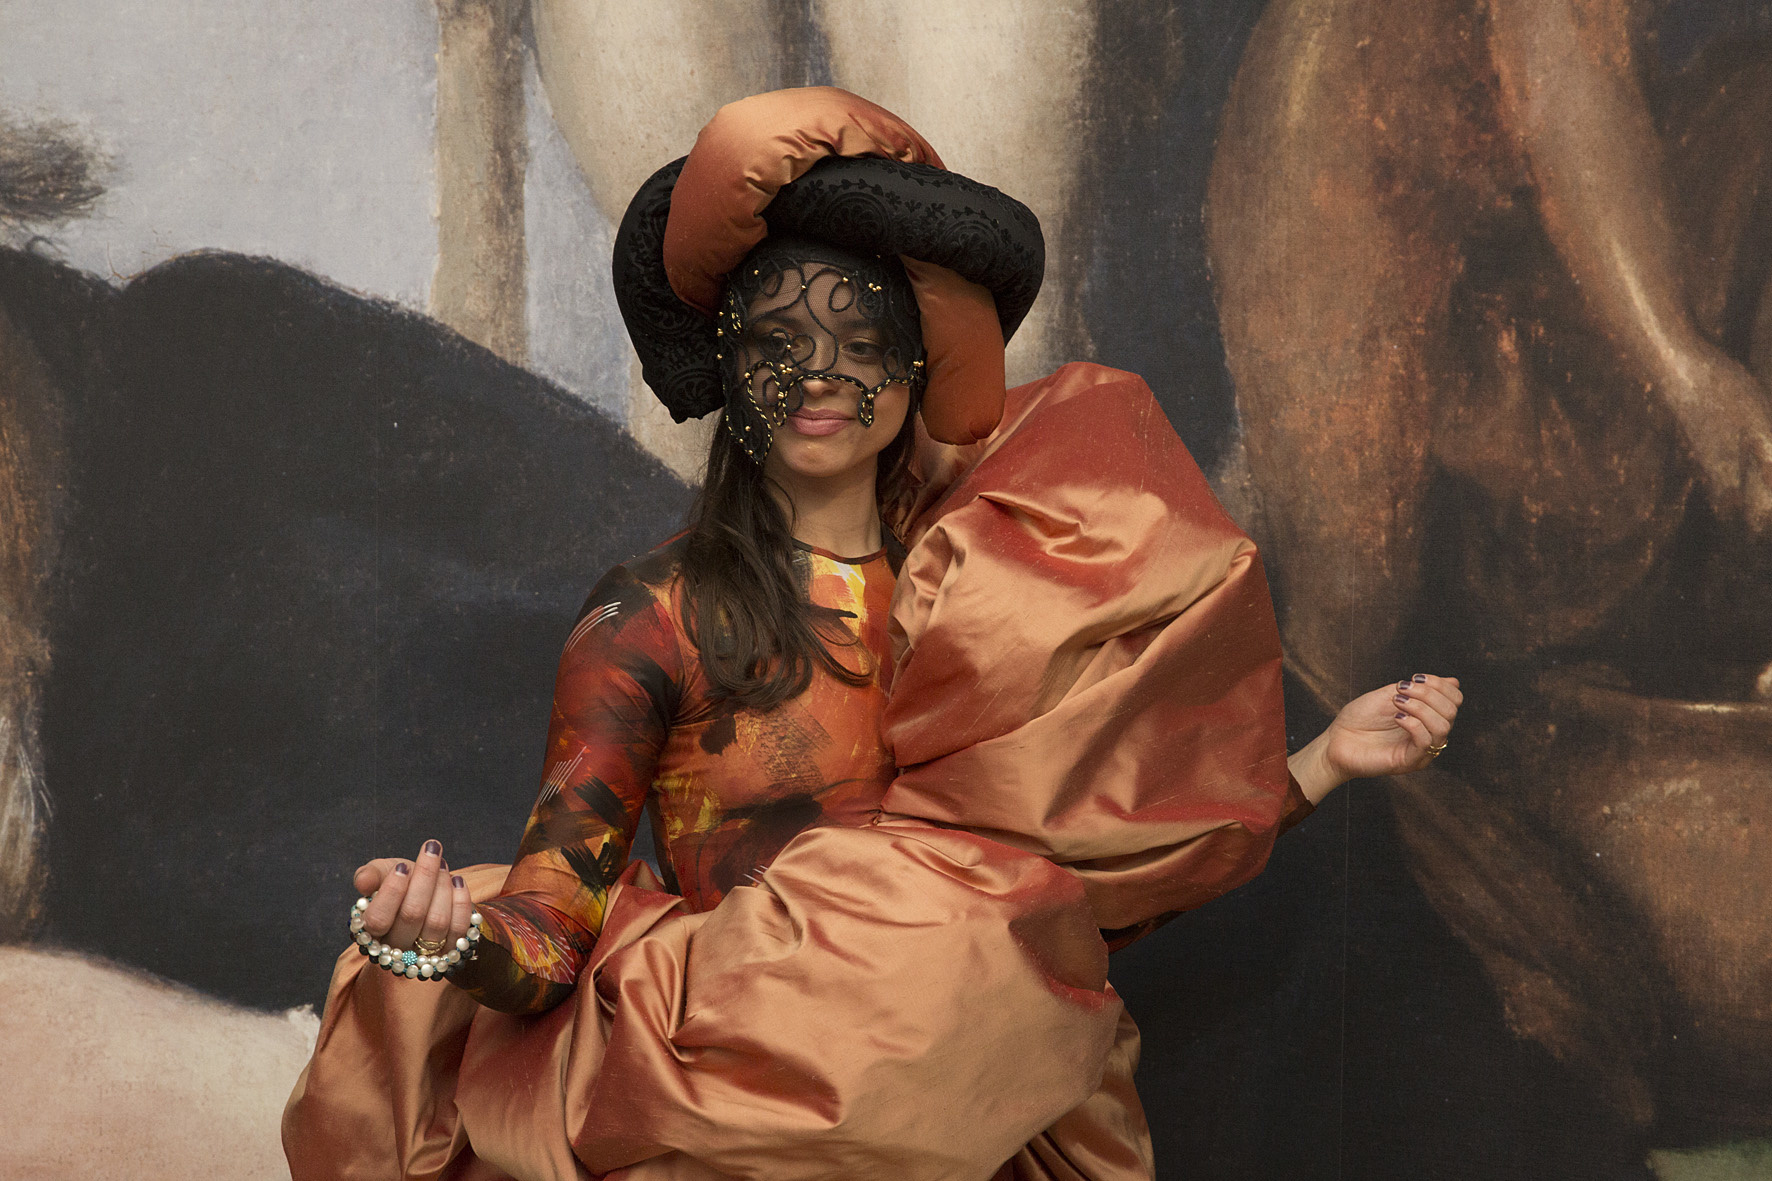 Student's costume which was part of the Lorenzo Lotto project